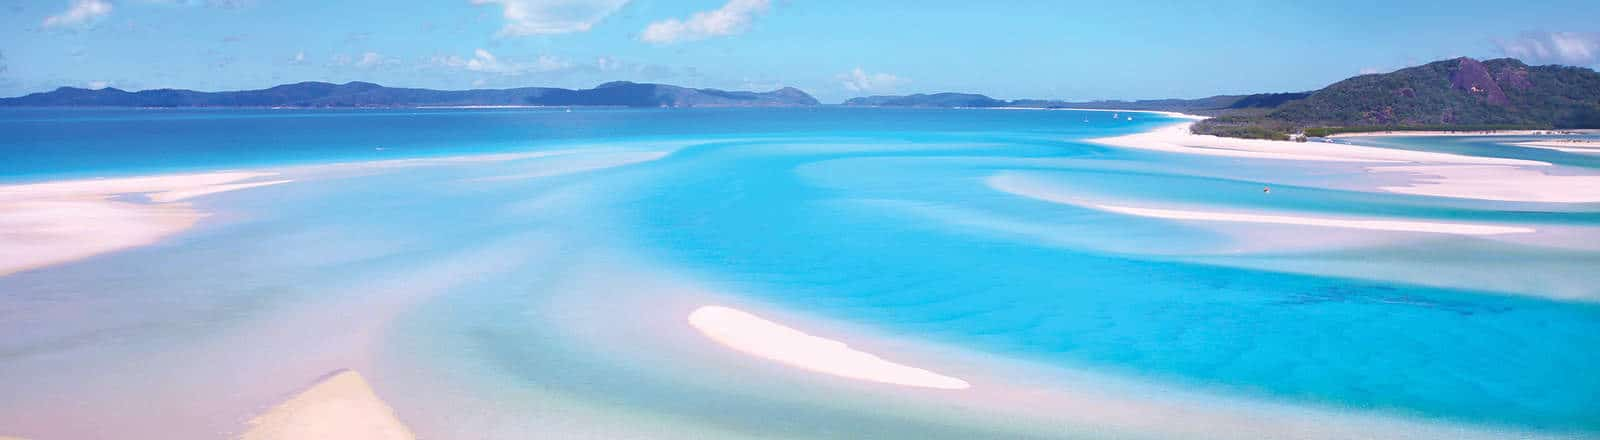 Why The Whitsundays?